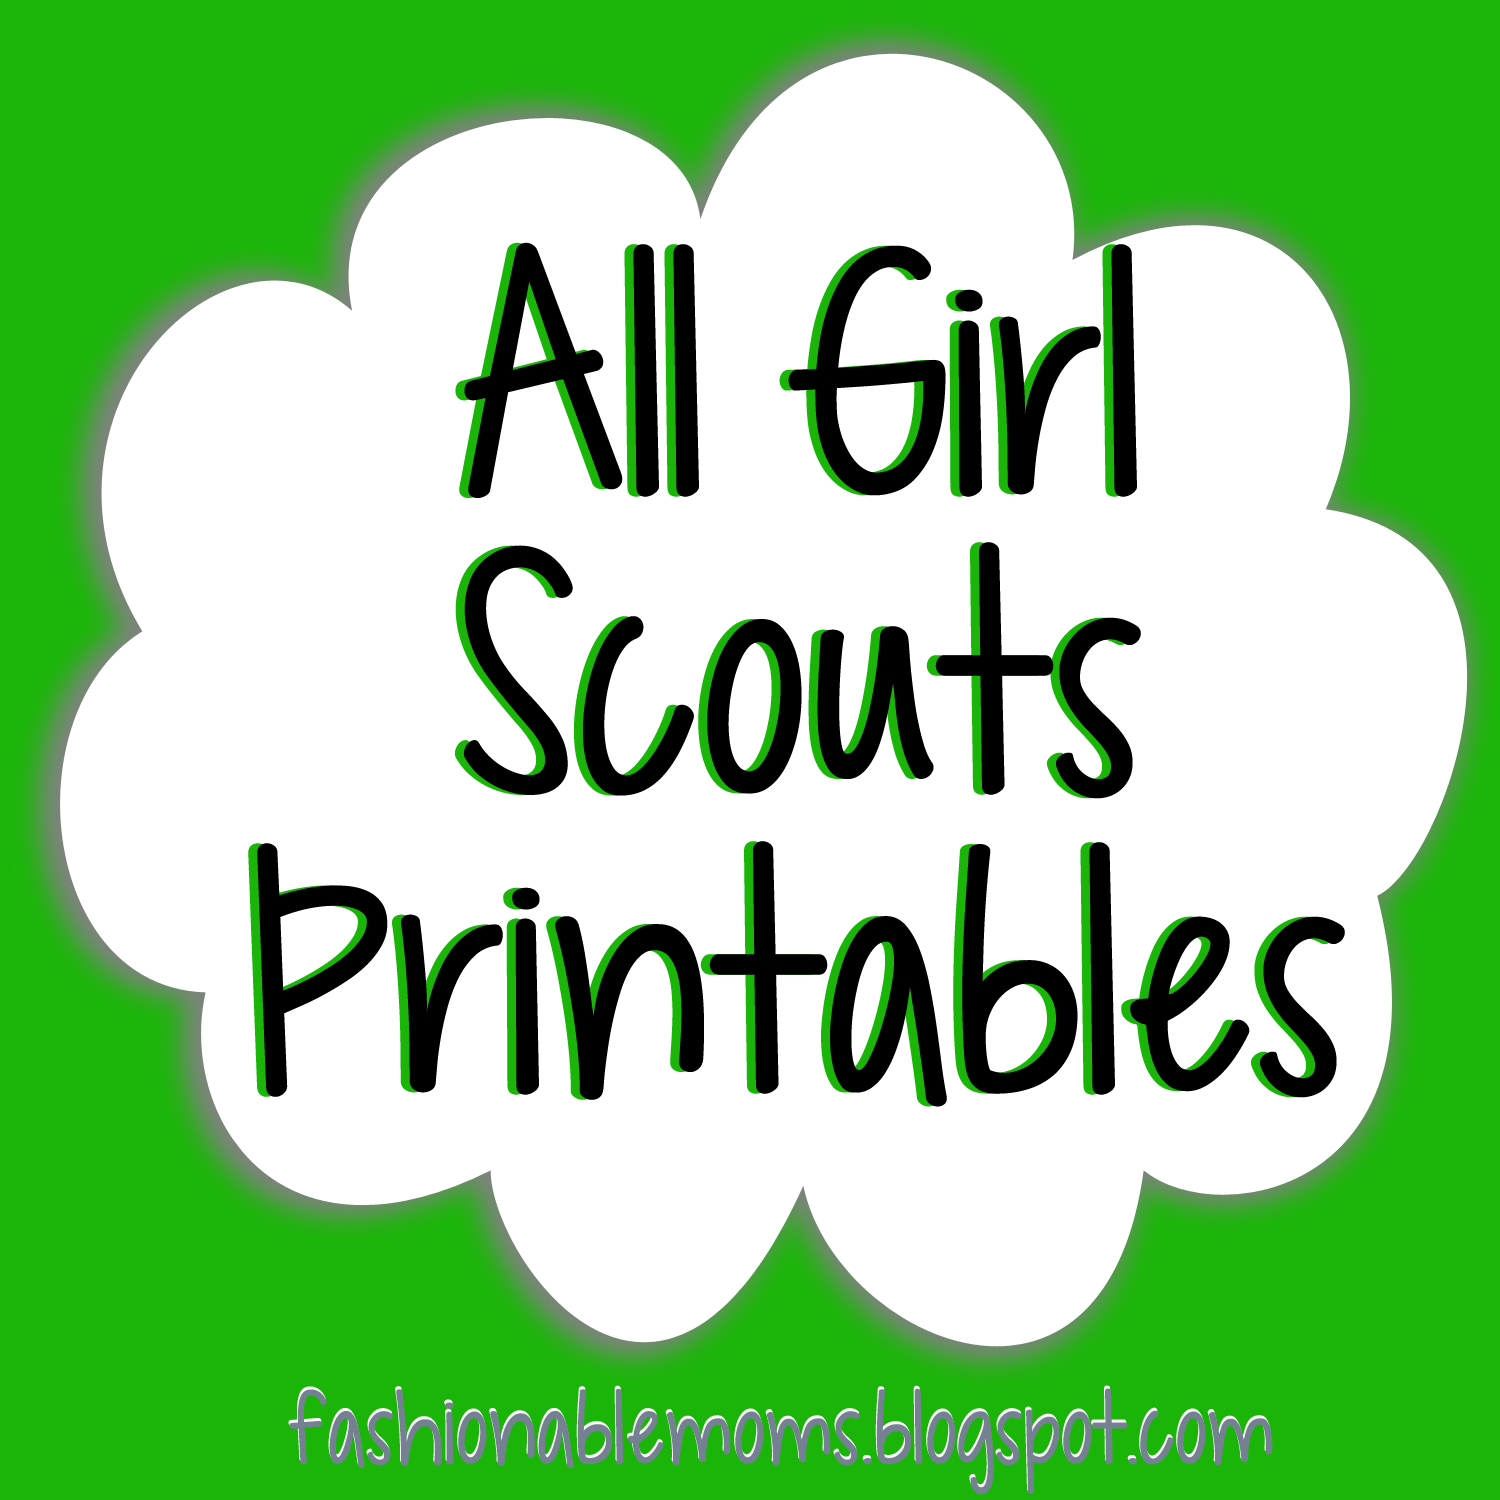 Free coloring pages for girl scouts - Girl Scouts Printables By Level Printables Nice Some Free Some Etsy